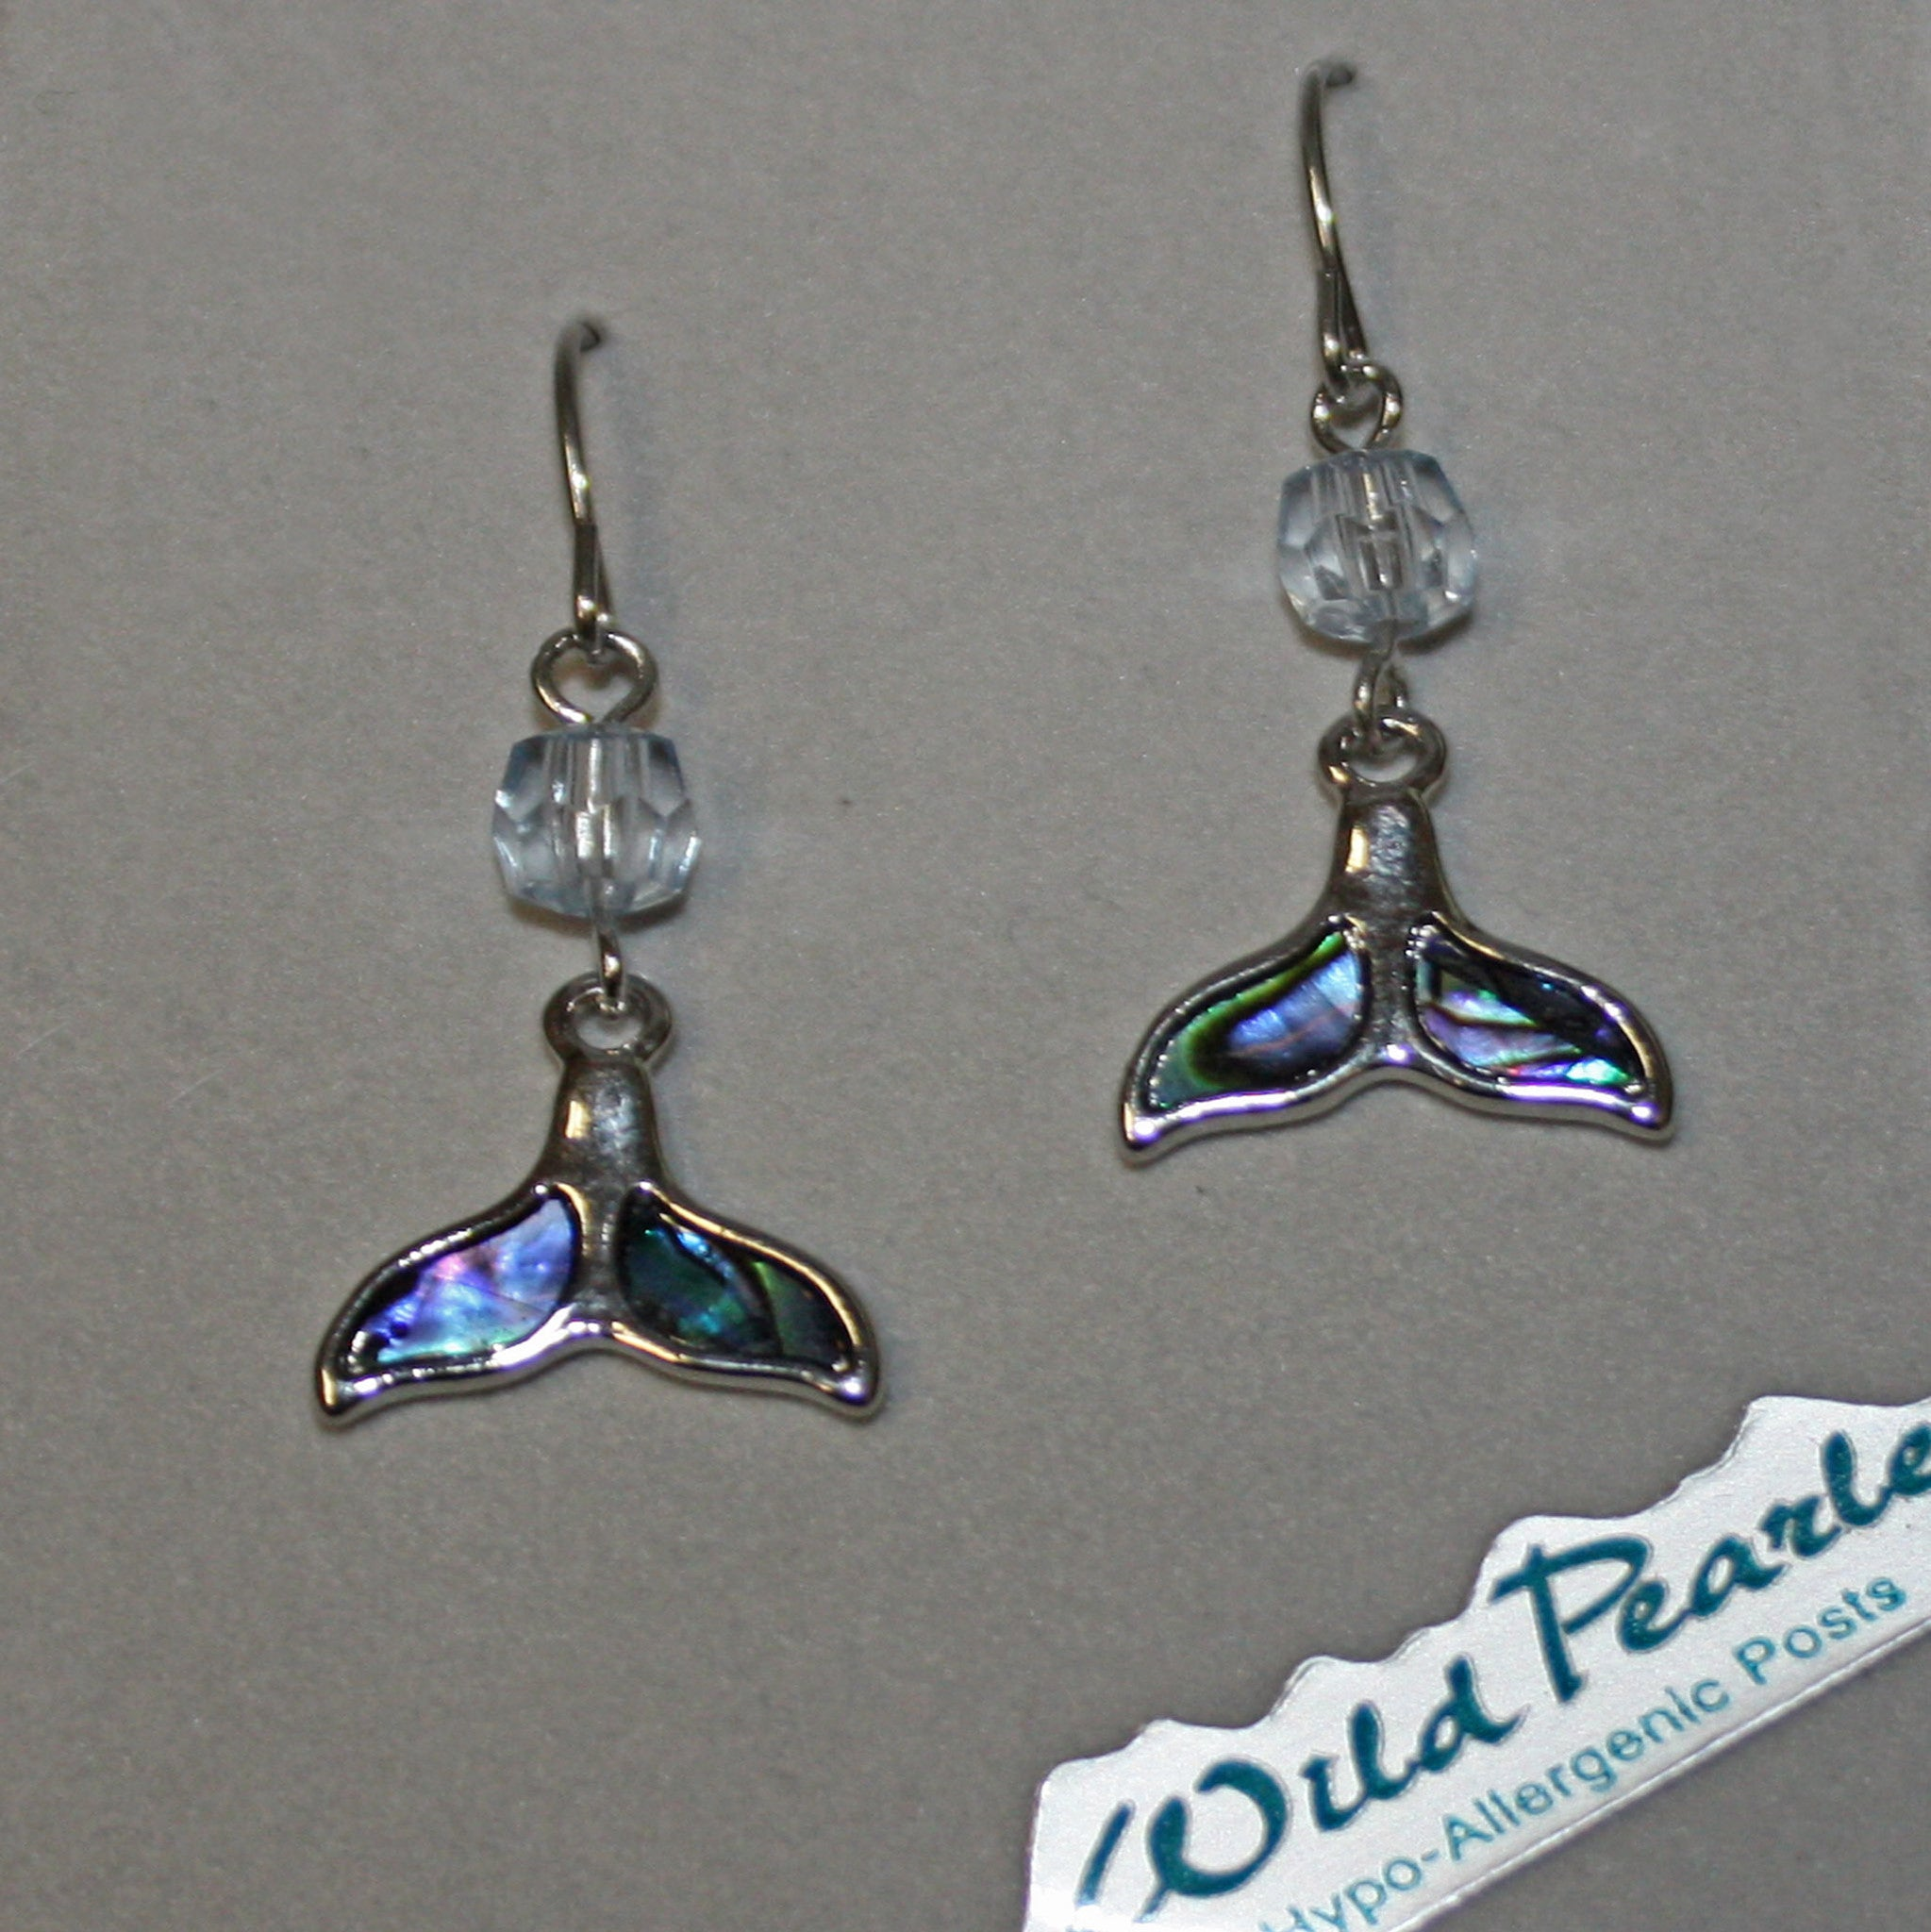 The Whale Song earrings